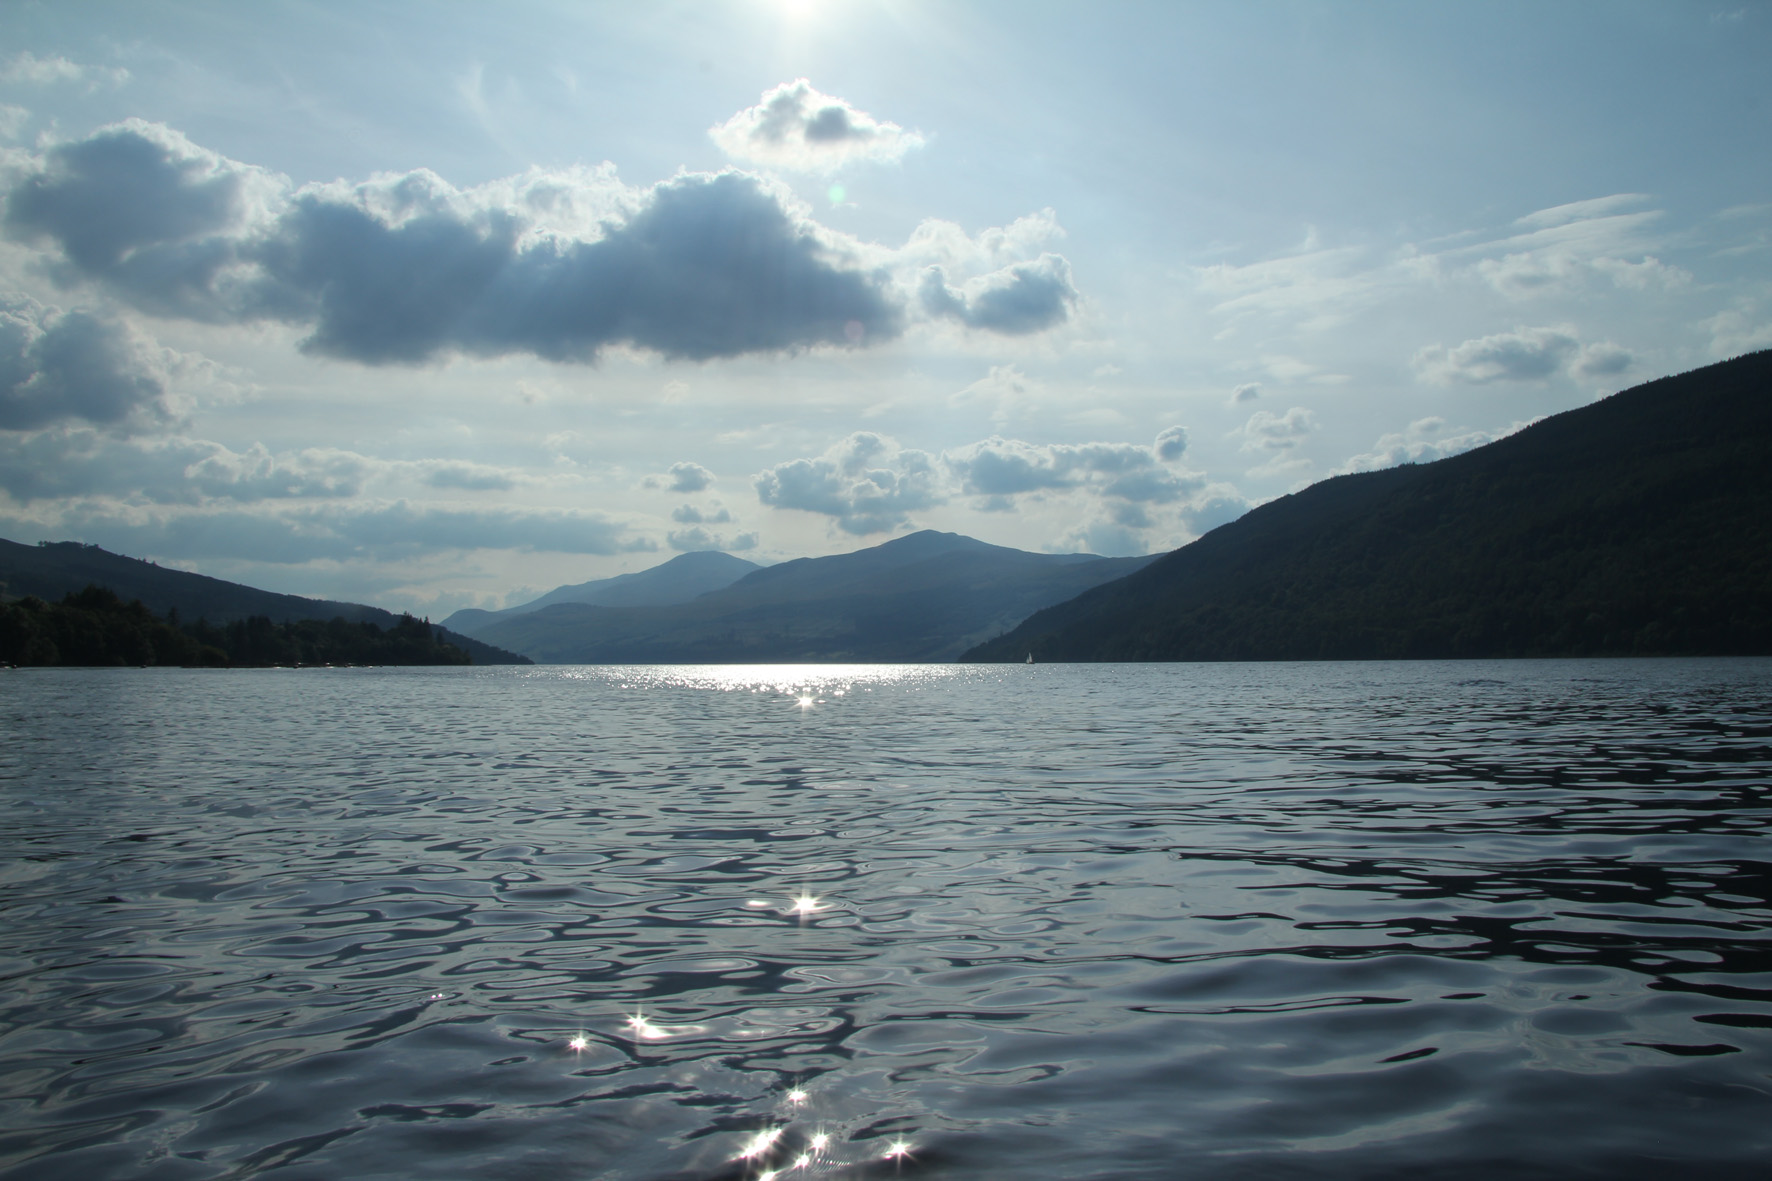 Adventure And Relaxation: Why Taymouth Marina Is One Of The Best Places To Holiday In Scotland